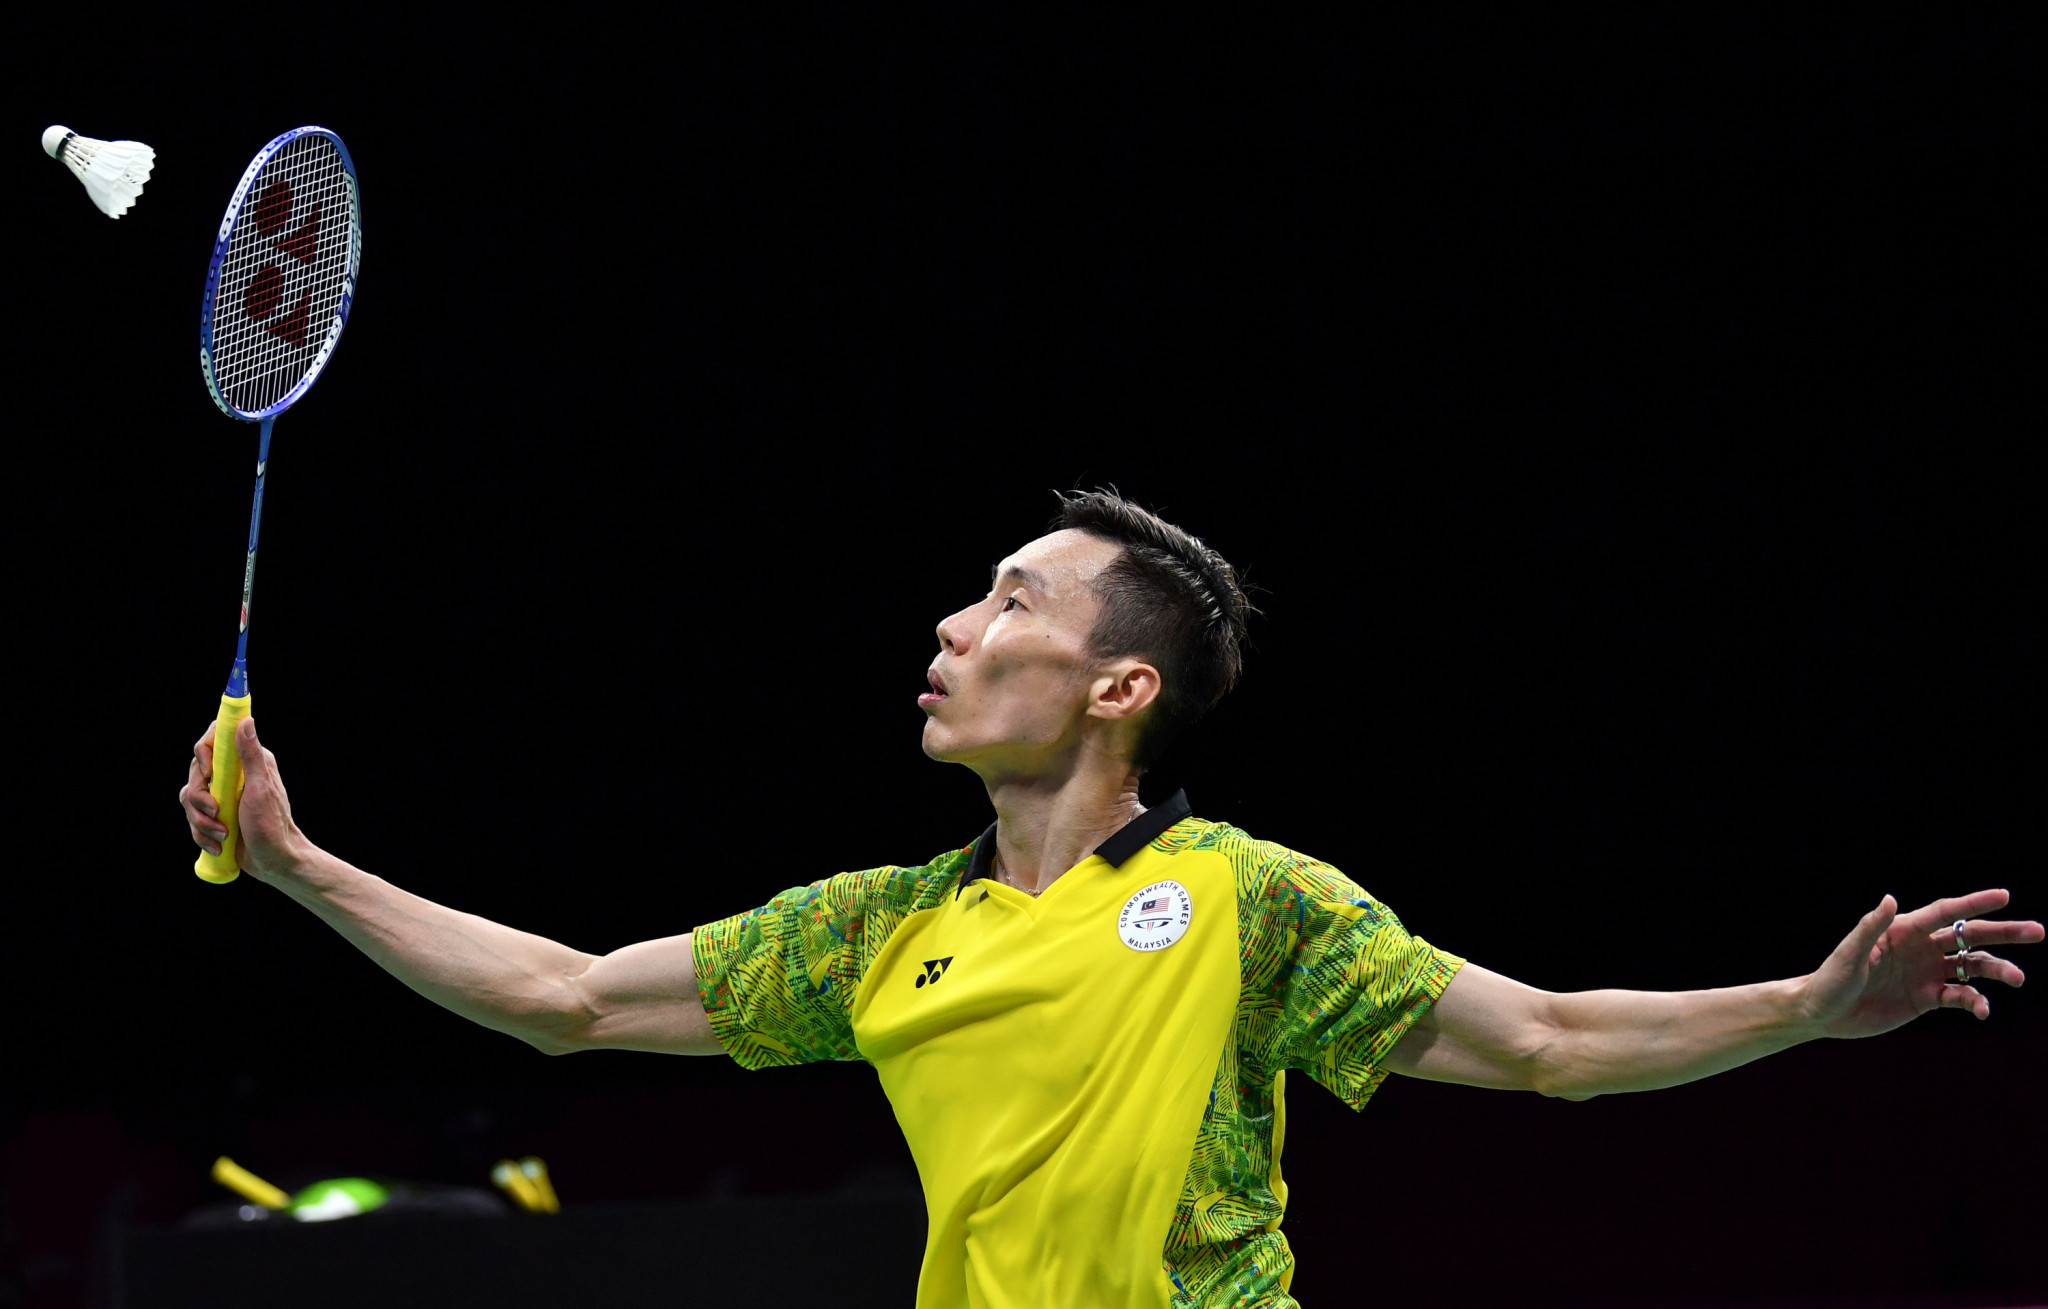 Malaysia's Lee Chong Wei is among the headline names due to participate at the Badminton Asia Championships in Wuhan ©Getty Images